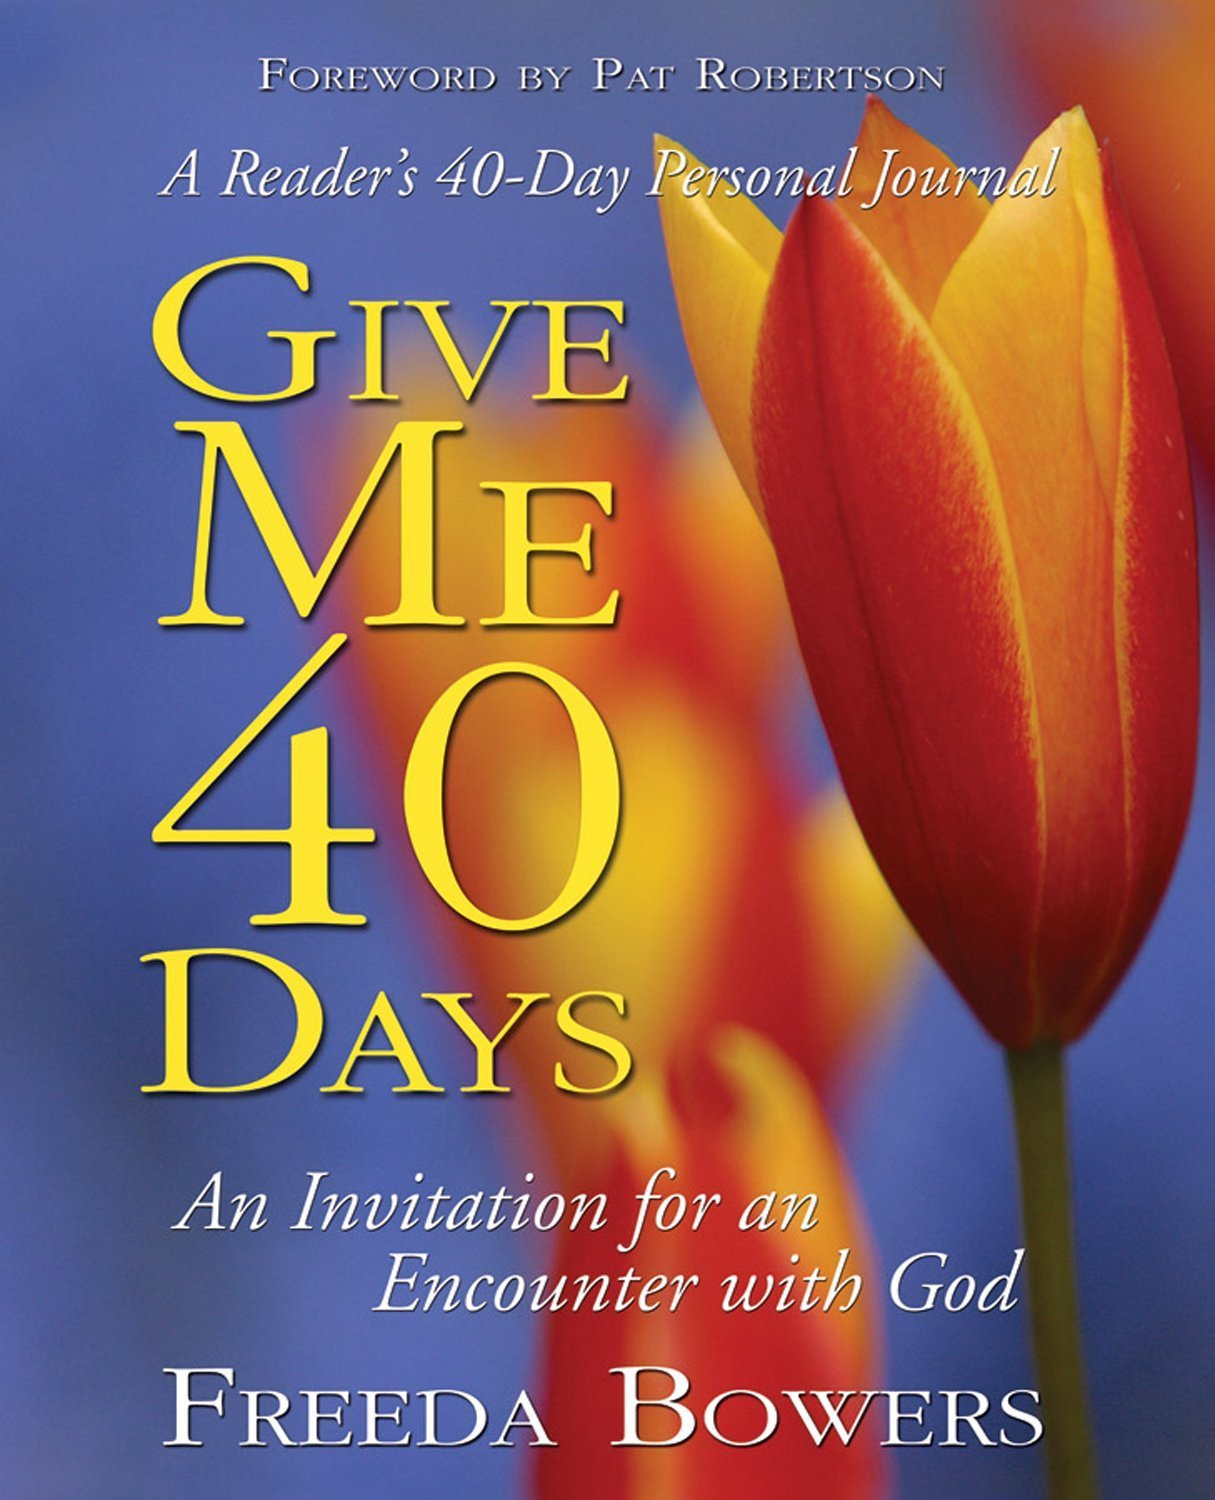 Give Me 40 Days: An Invitation for an Encounter with God pdf